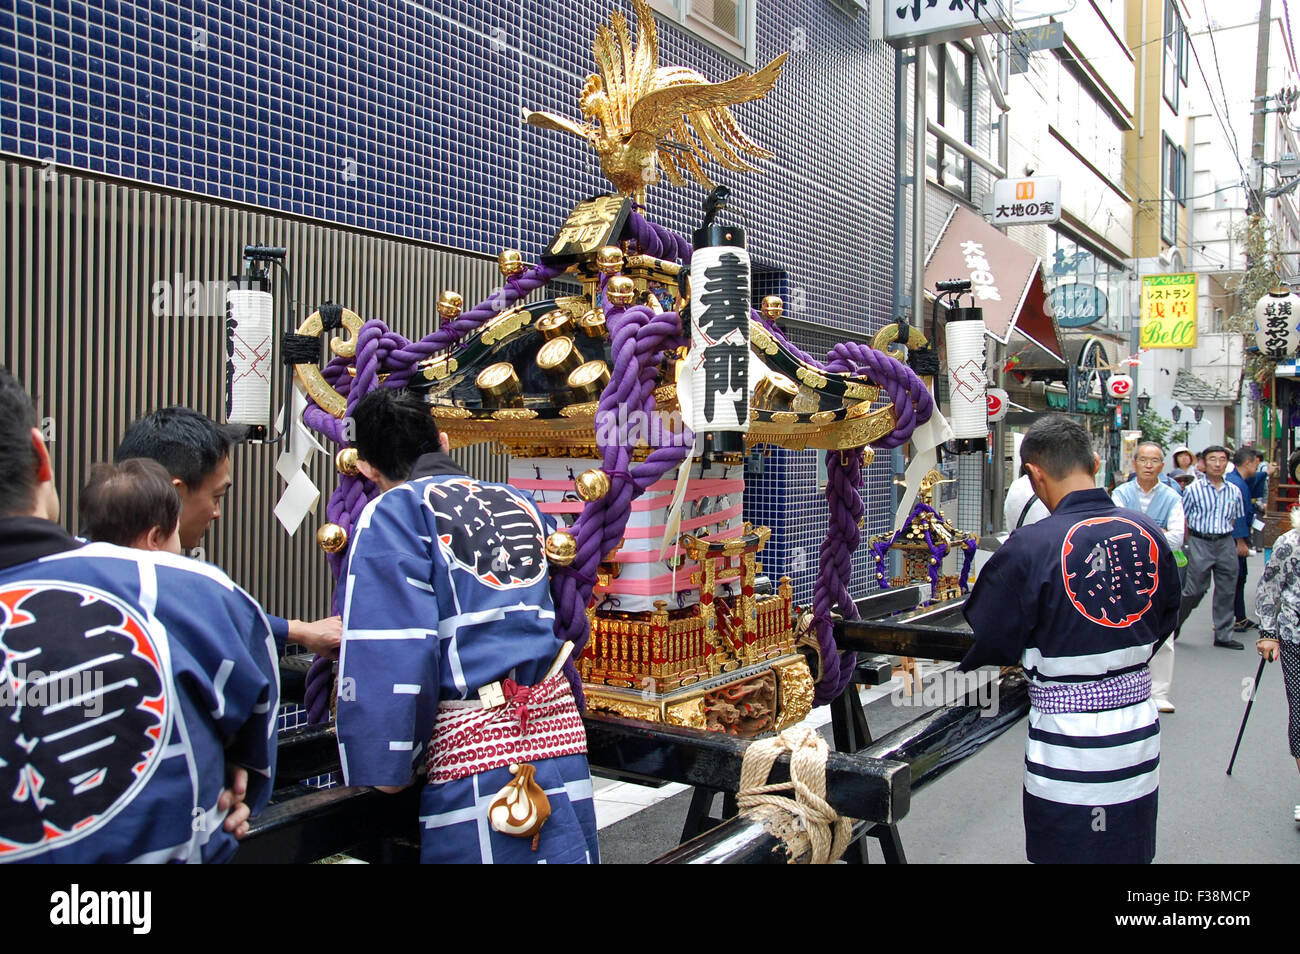 Mikoshi and bearers during the Sanja Matsuri Festival in the Asakusa Ward of Tokyo, Japan. - Stock Image